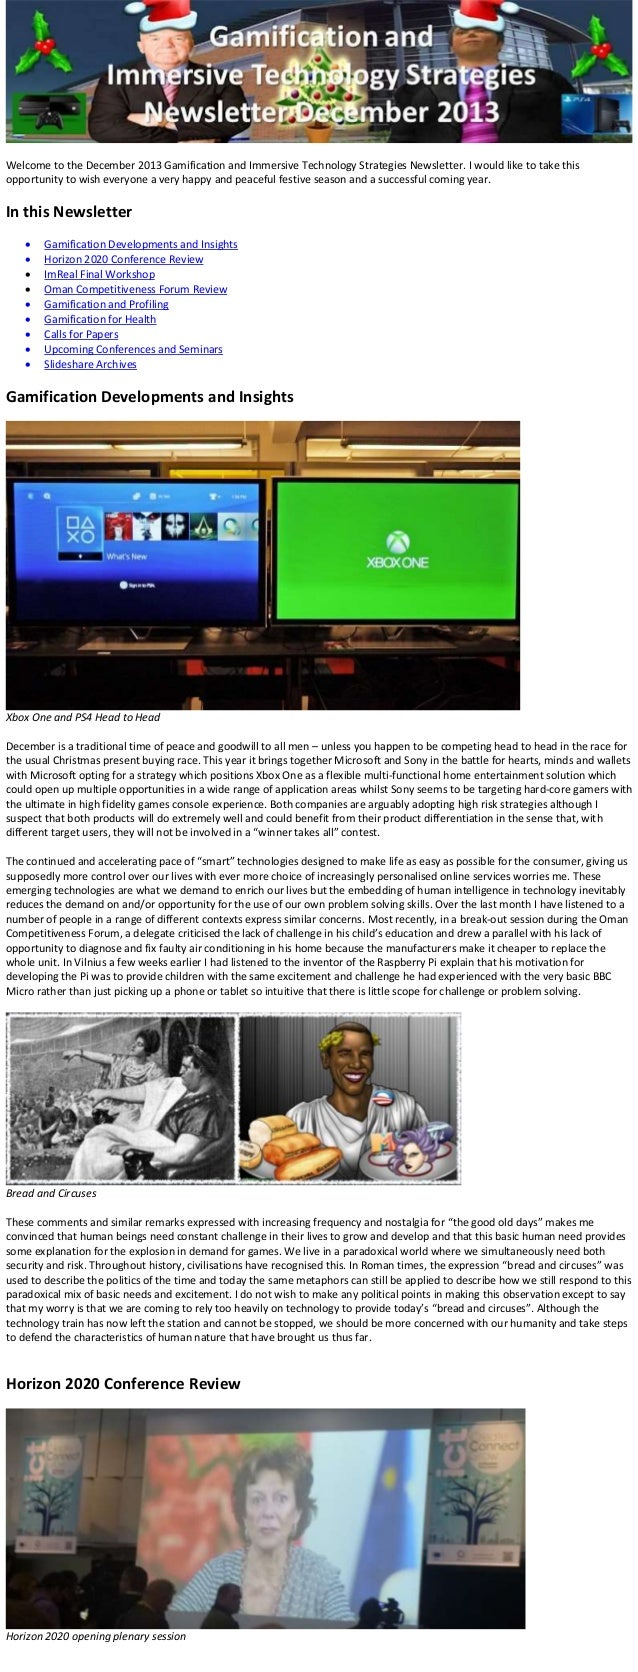 Welcome to the December 2013 Gamification and Immersive Technology Strategies Newsletter. I would like to take this opport...